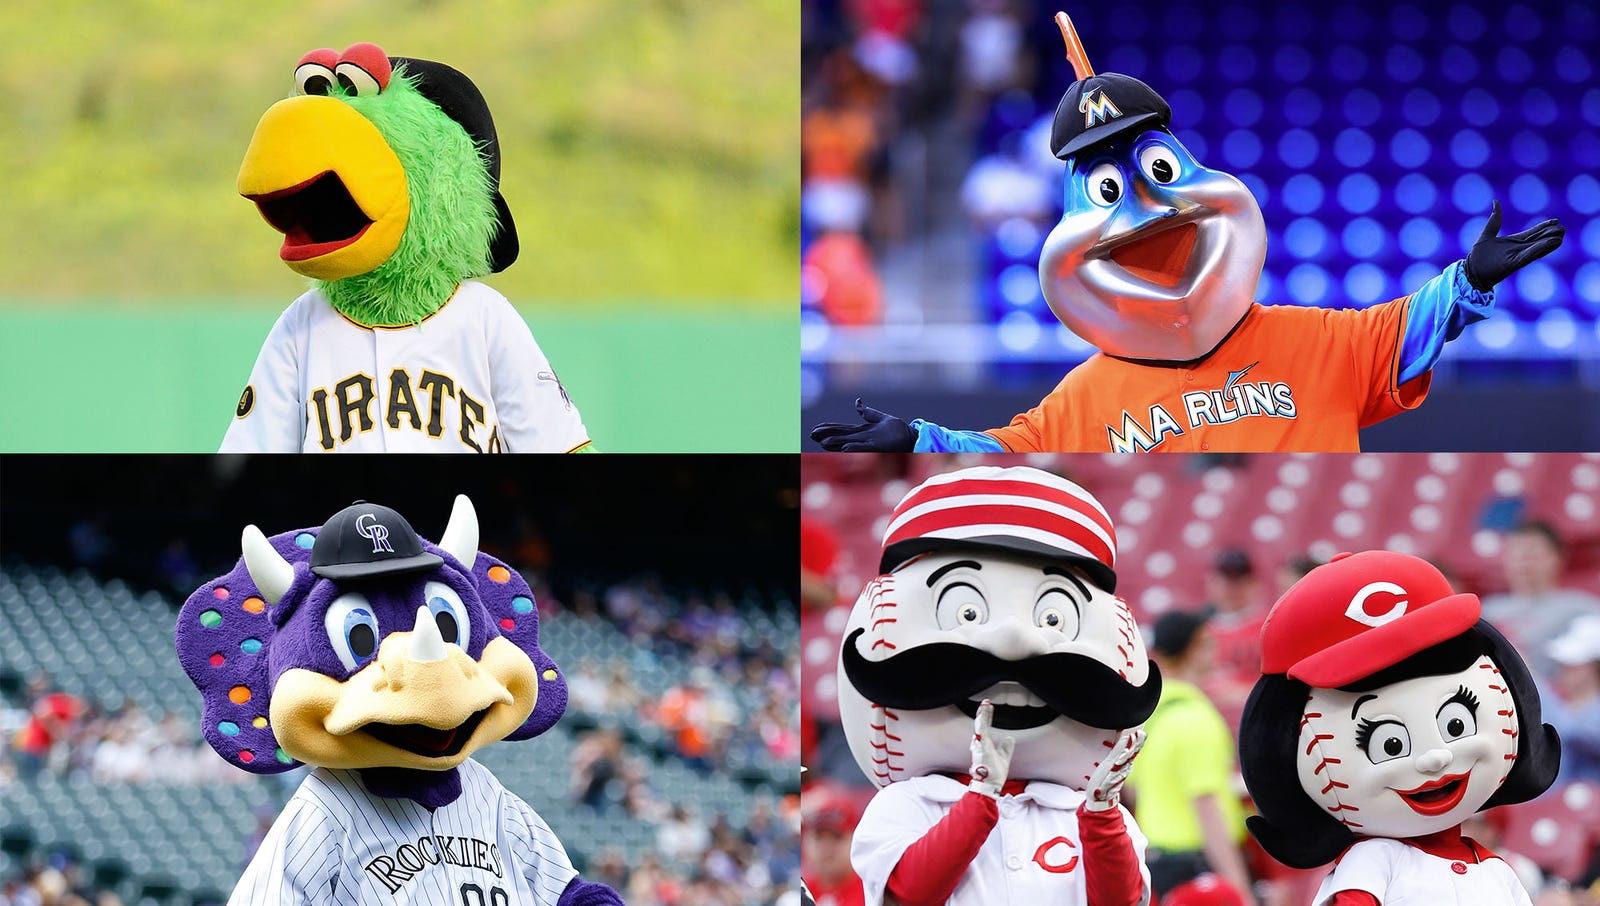 MLB Mascots Union Demands More Bald Fans To Playfully Tease Between Innings